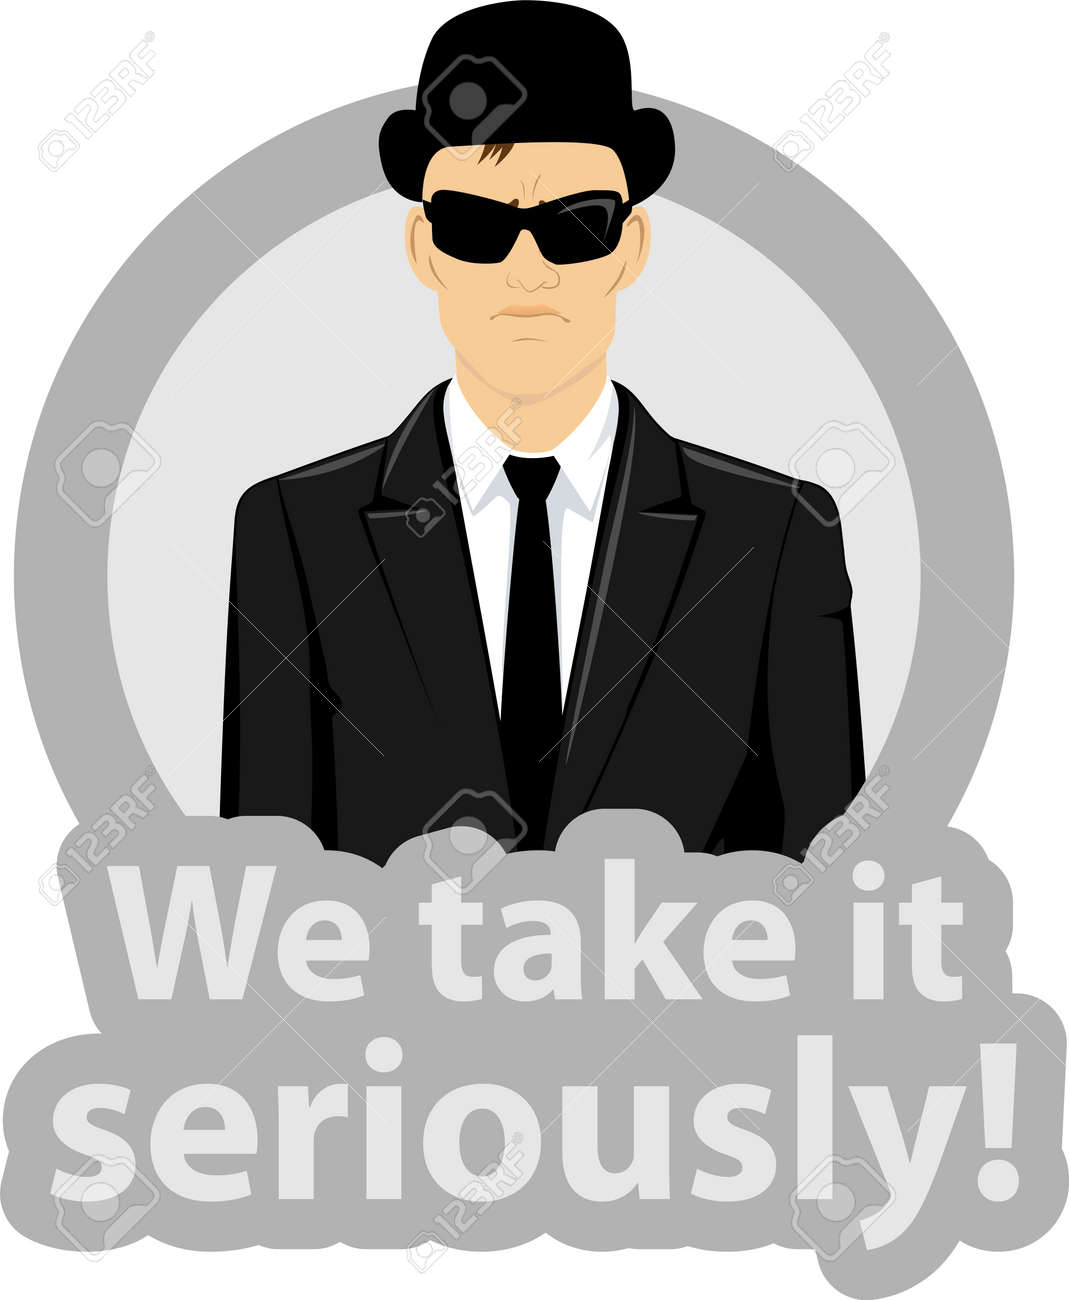 illustration of a serious business man wearing a black suit , sunglasses and hat in a circle with text - we take it seriously Stock Vector - 15125872